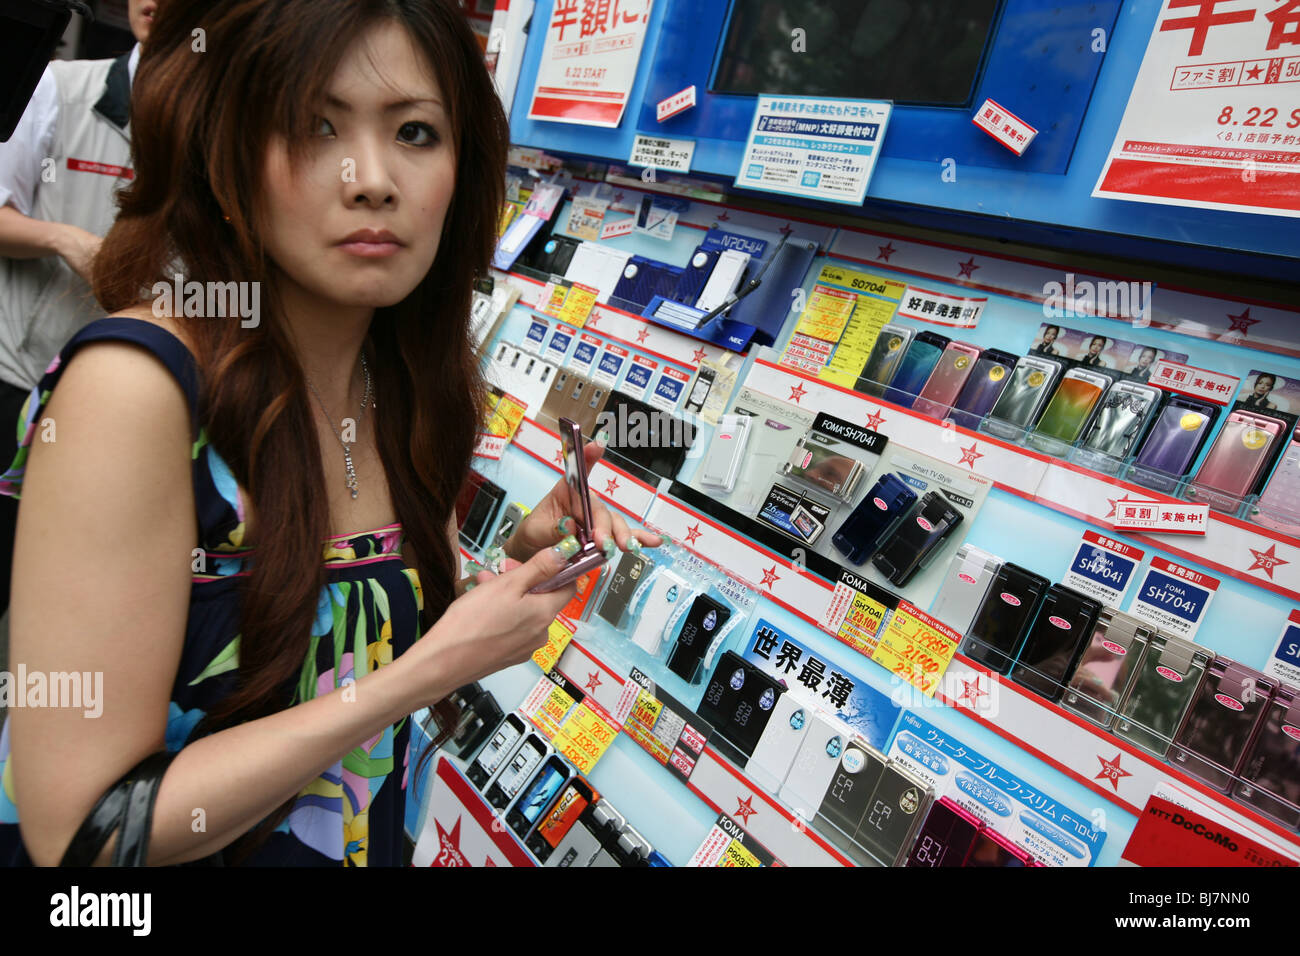 Customers shopping for new mobile telephones in phone store in Tokyo, Japan, 2007. - Stock Image